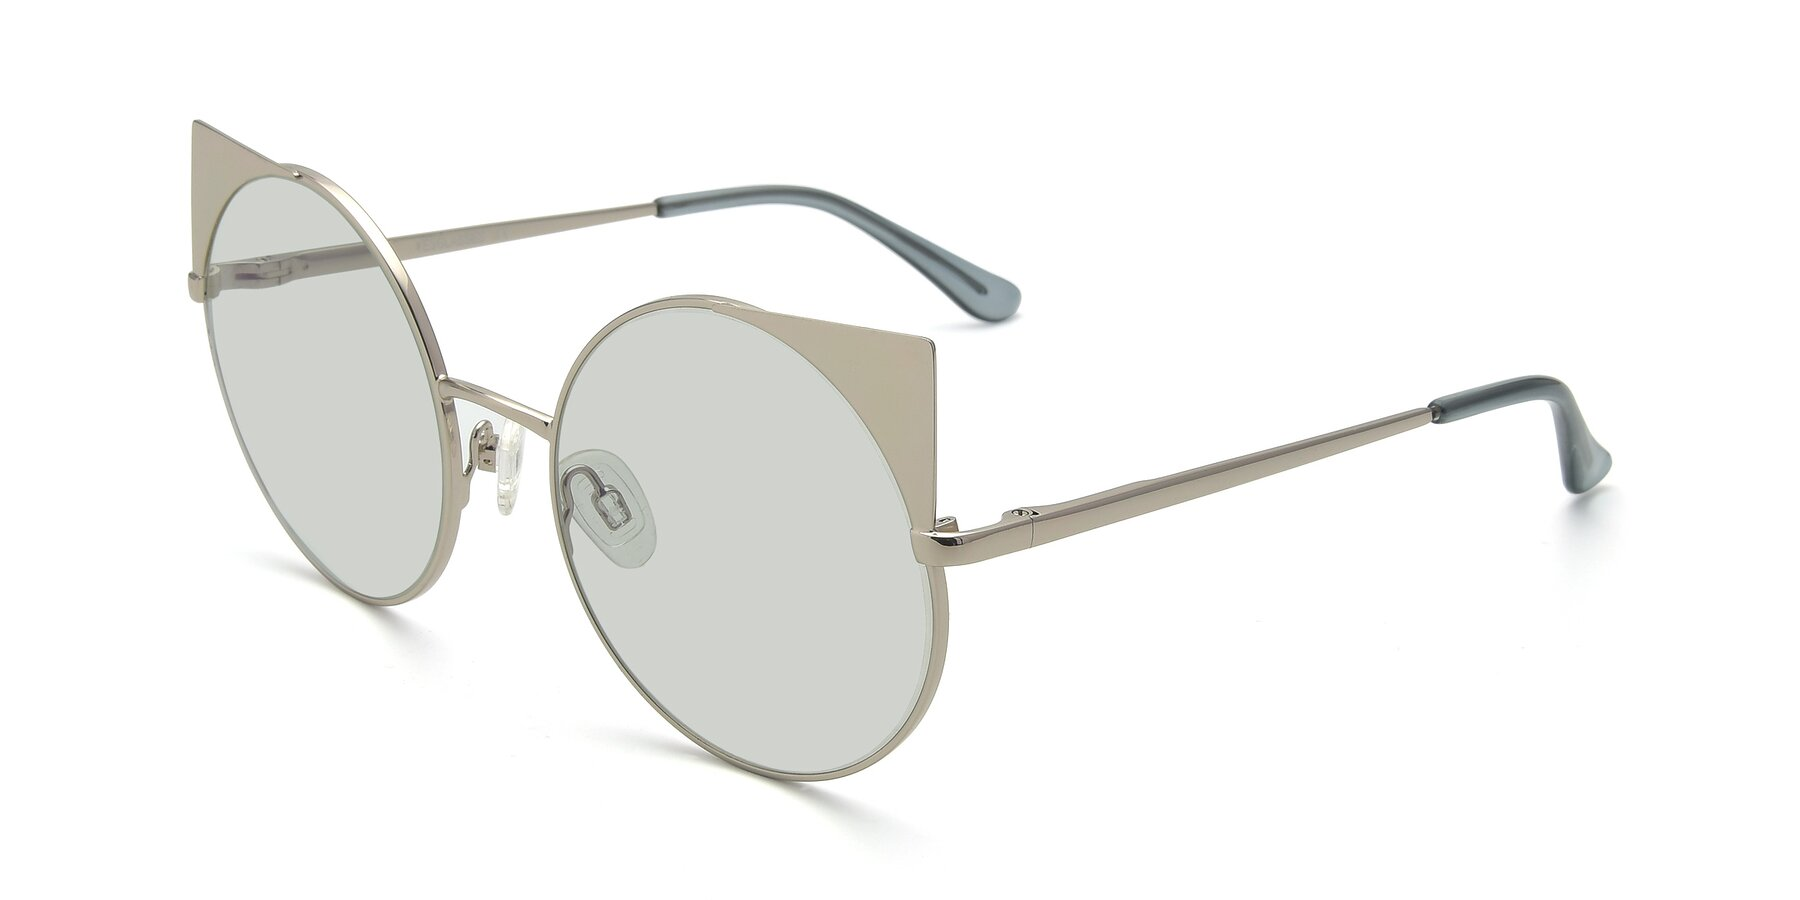 Angle of SSR1955 in Silver with Light Green Tinted Lenses